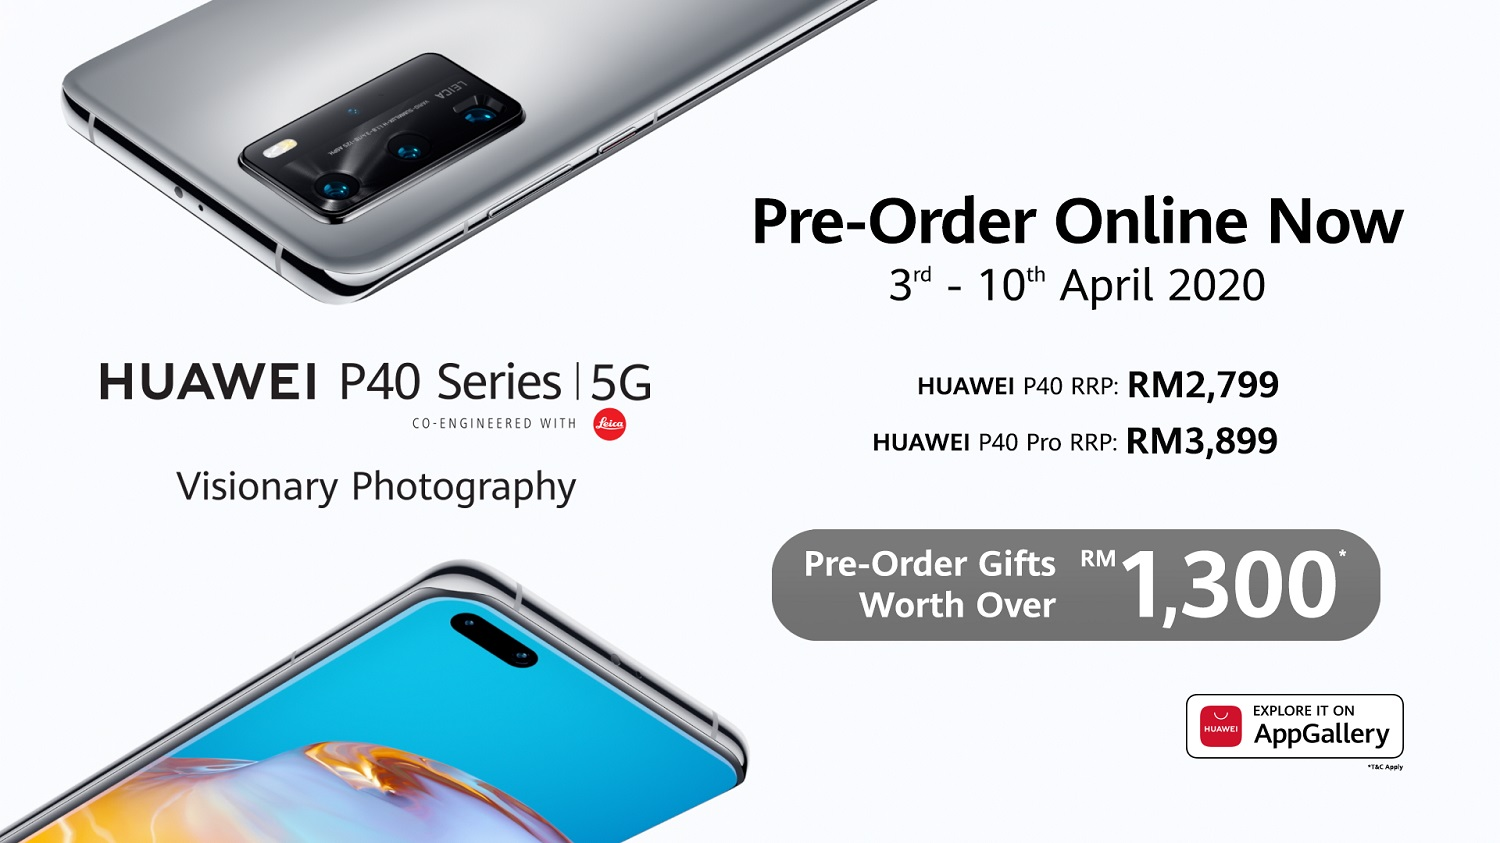 HUAWEI Media Launch and Everything You Need to Know for Your Online Pre-Order